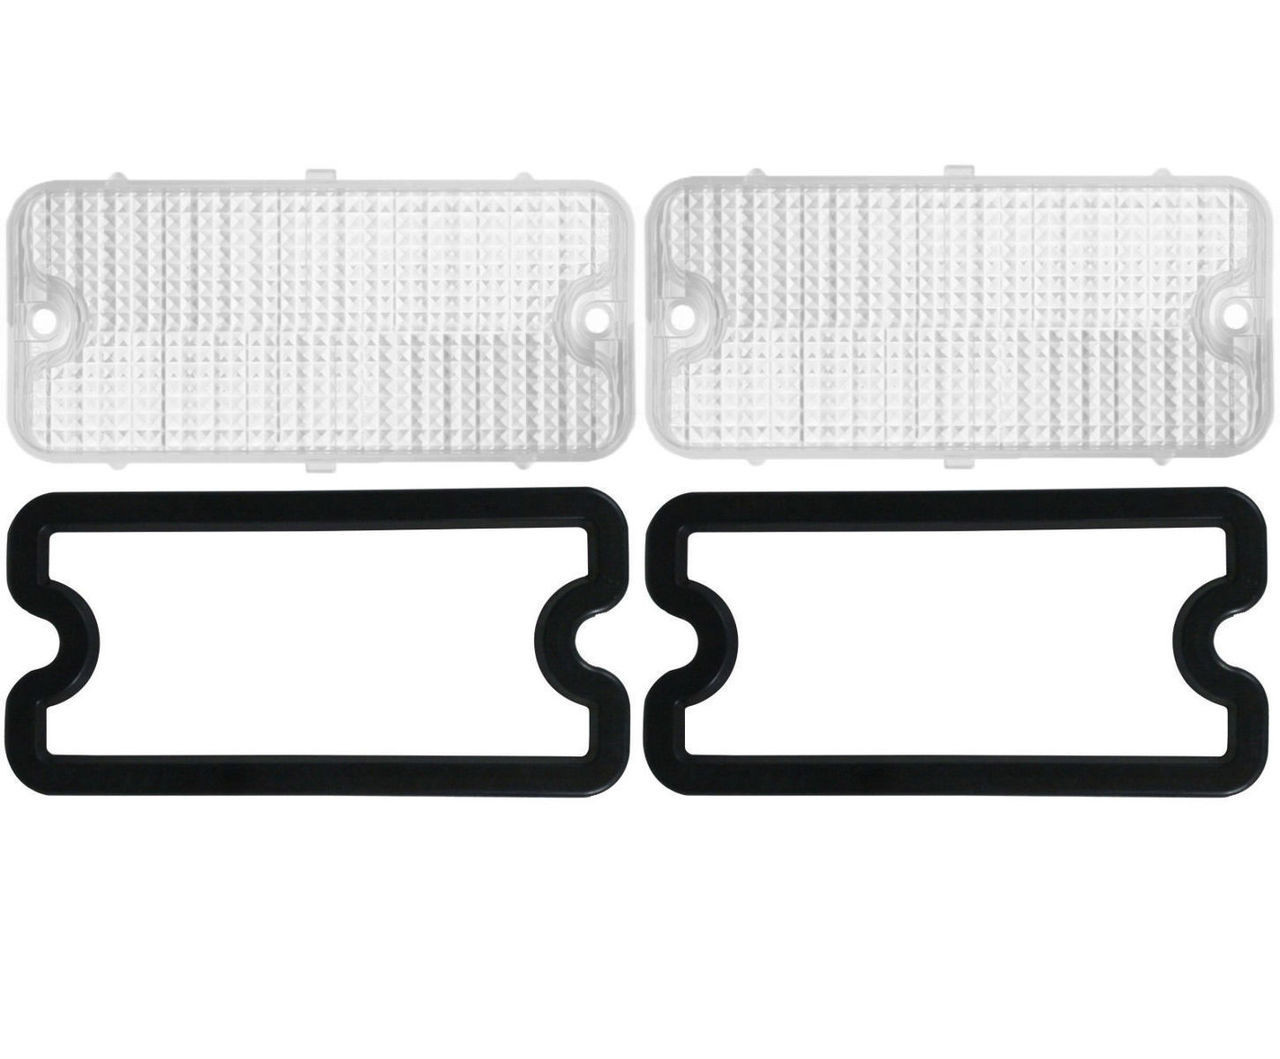 (2) Parking Light Lenses w/ Gaskets, Clear, Pair, Fits Chevy 1967-1968 Truck